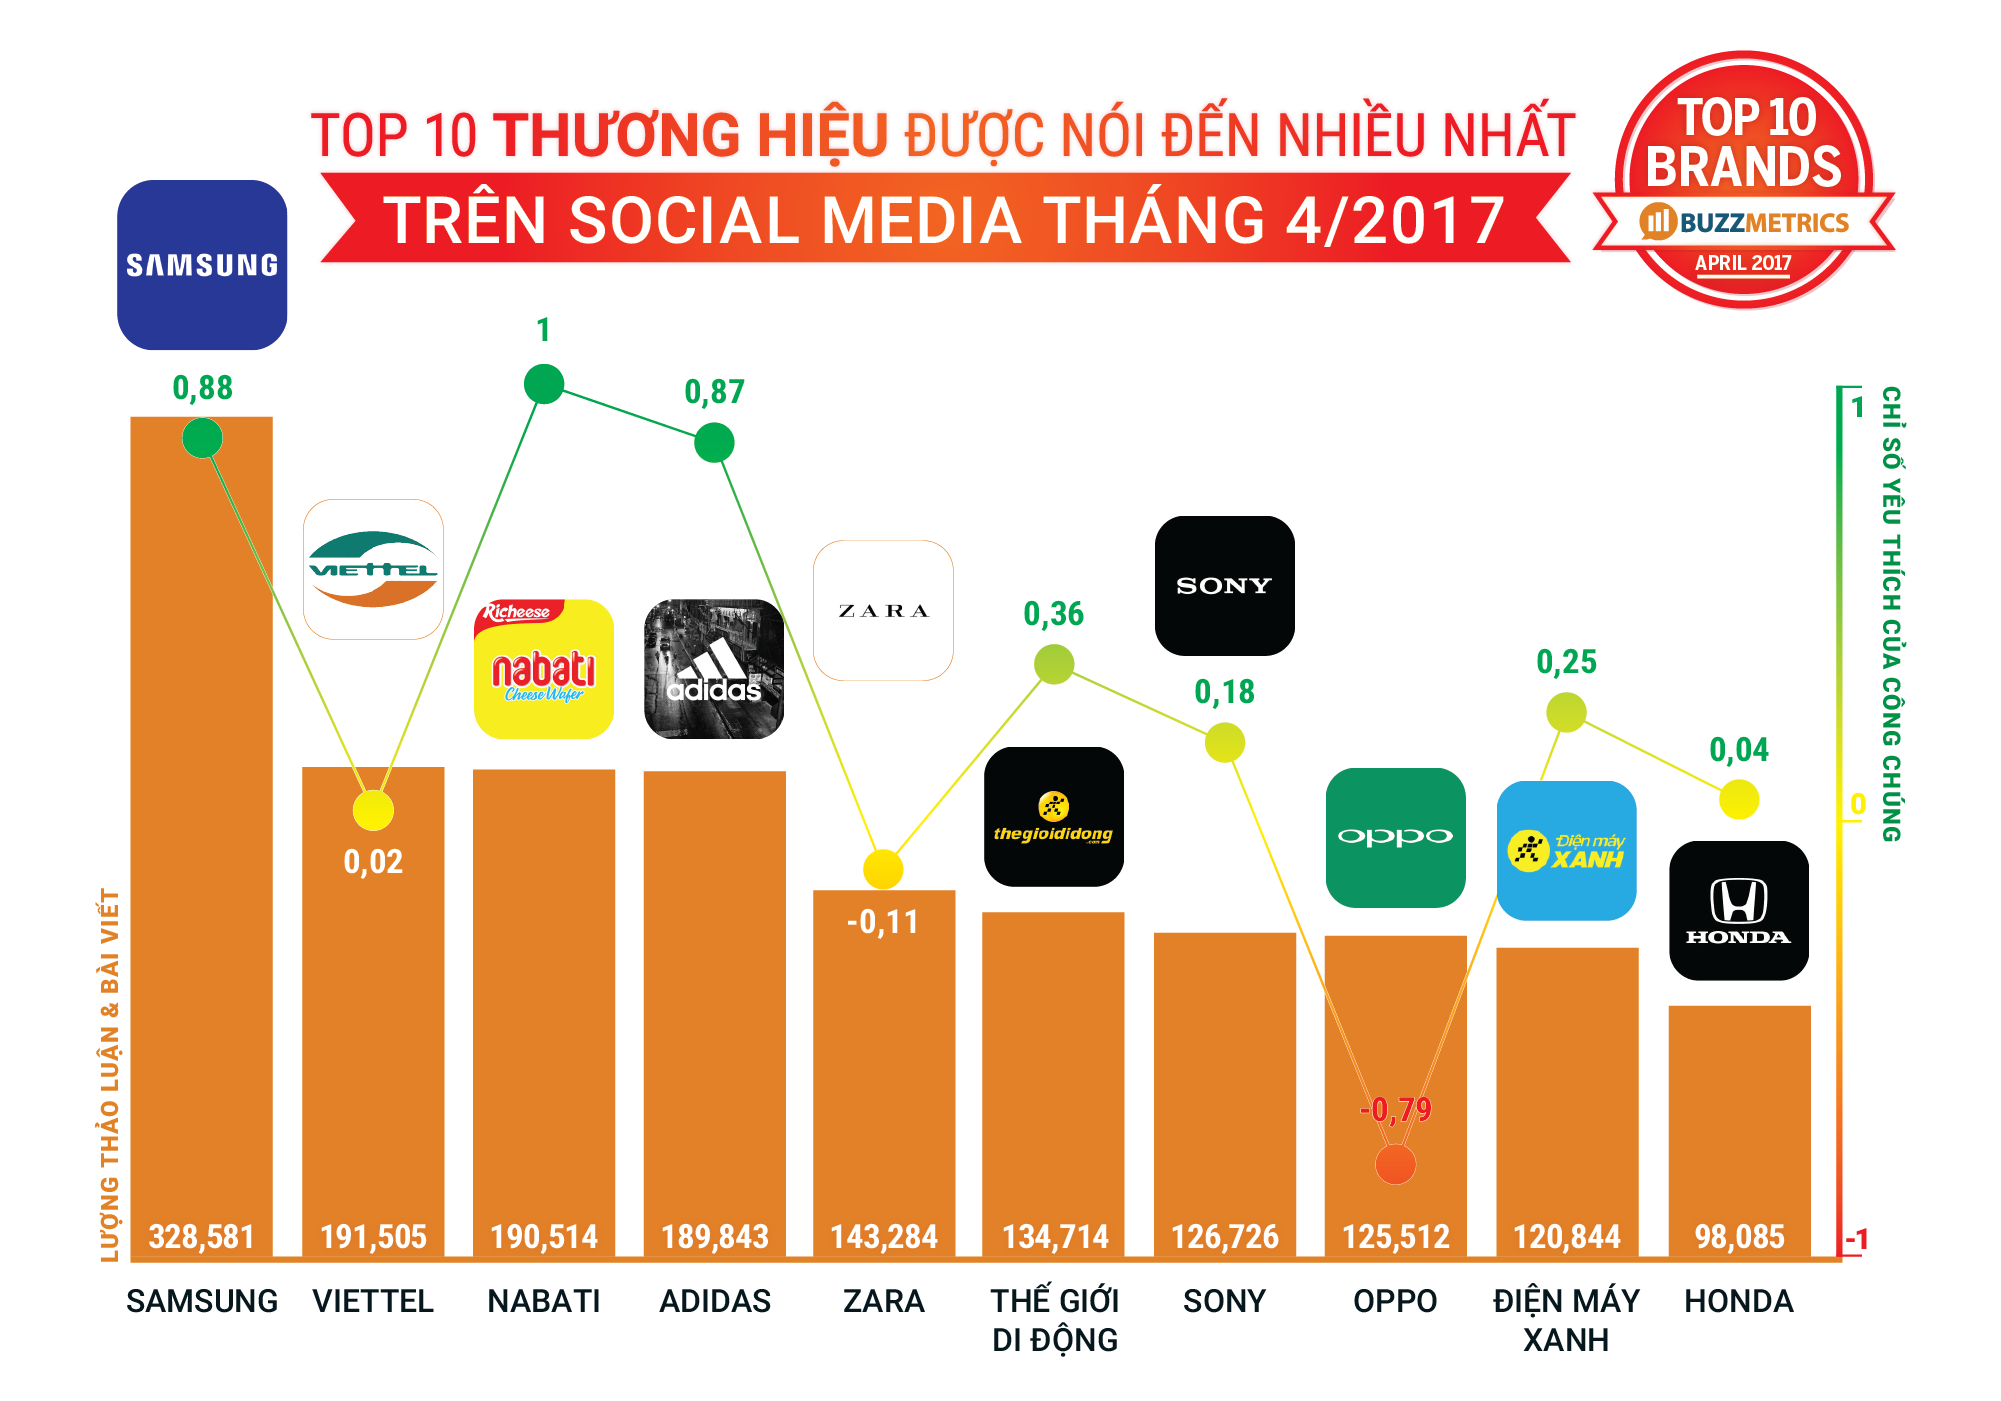 TopBuzz tháng 04/2017 _TOPBUZZ-APRIL2017-BRANDS_1